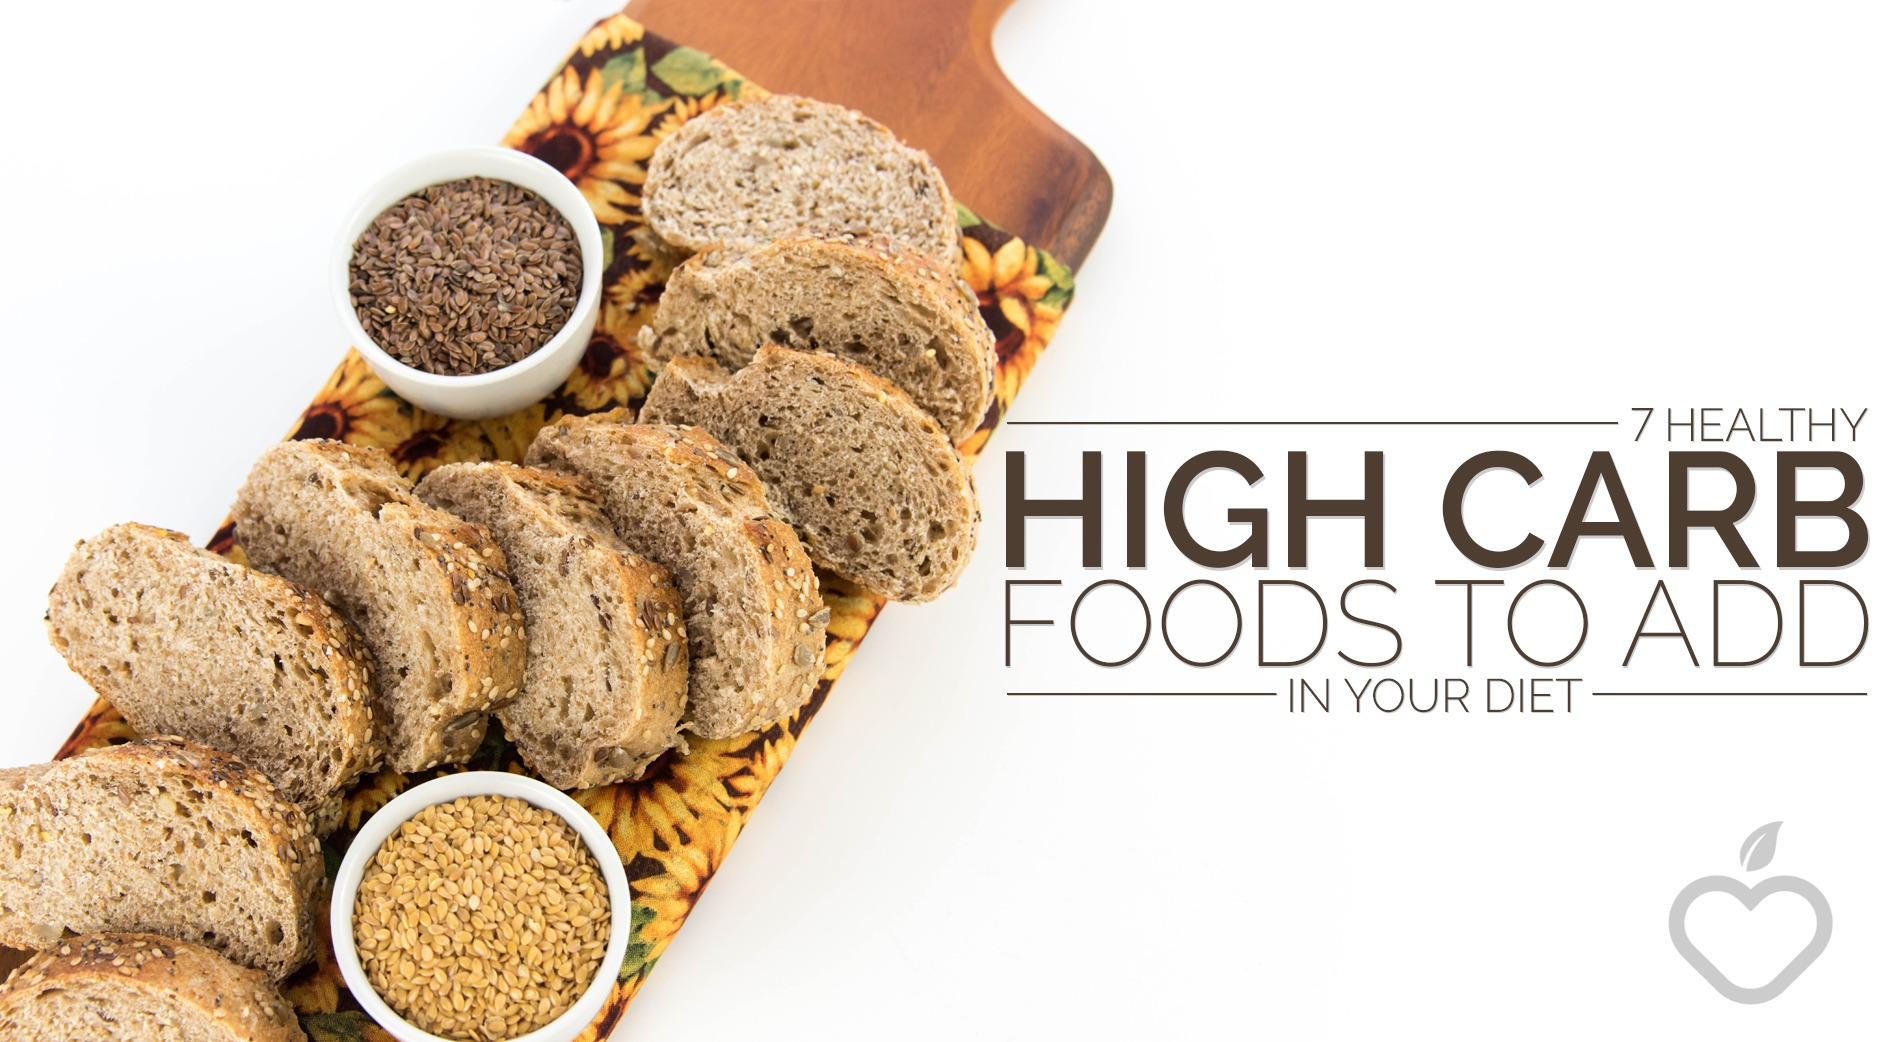 7 healthy high carb foods to add in your diet